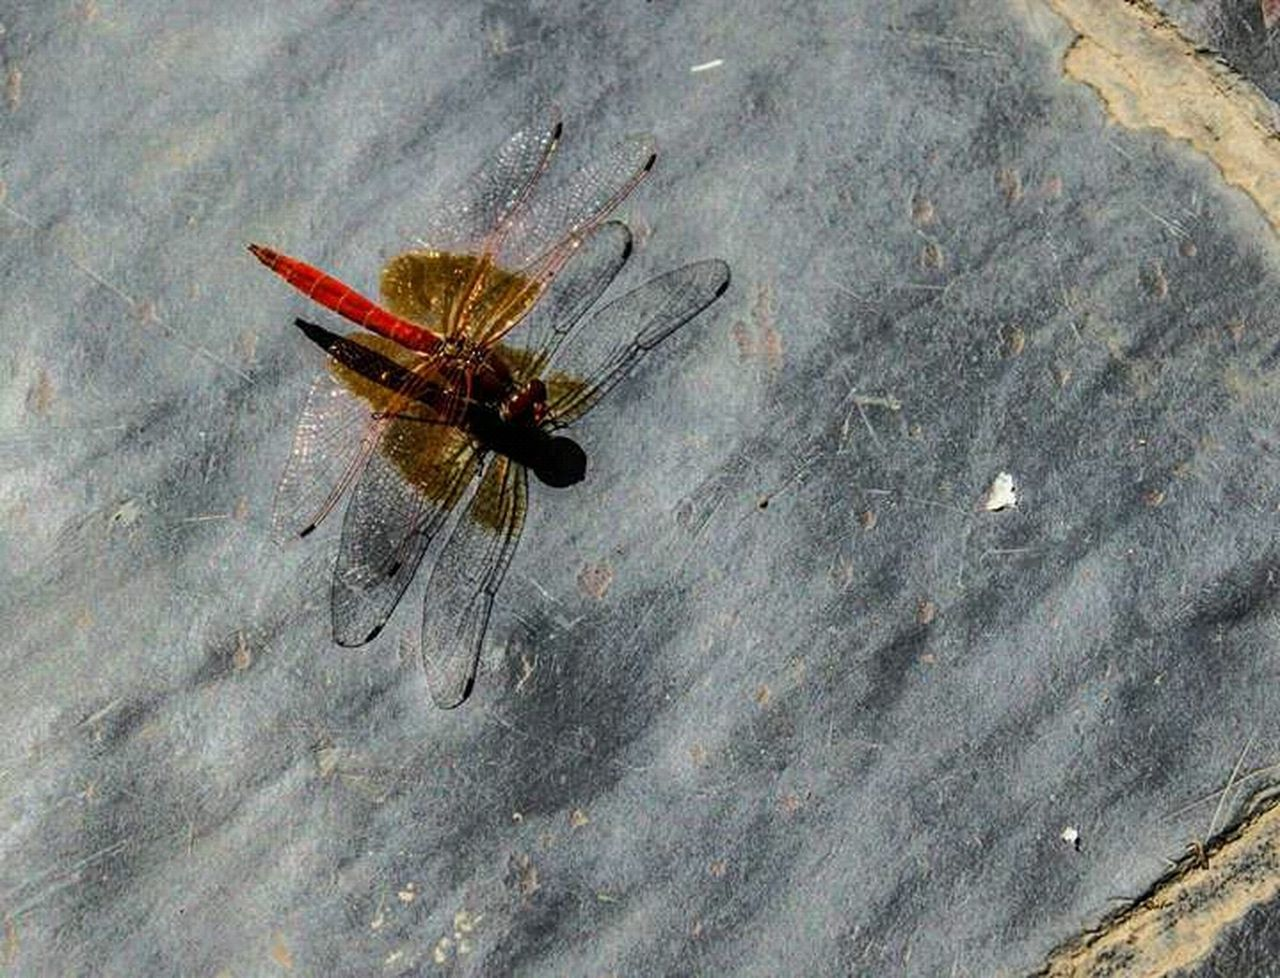 insect, animal themes, animals in the wild, one animal, day, no people, close-up, outdoors